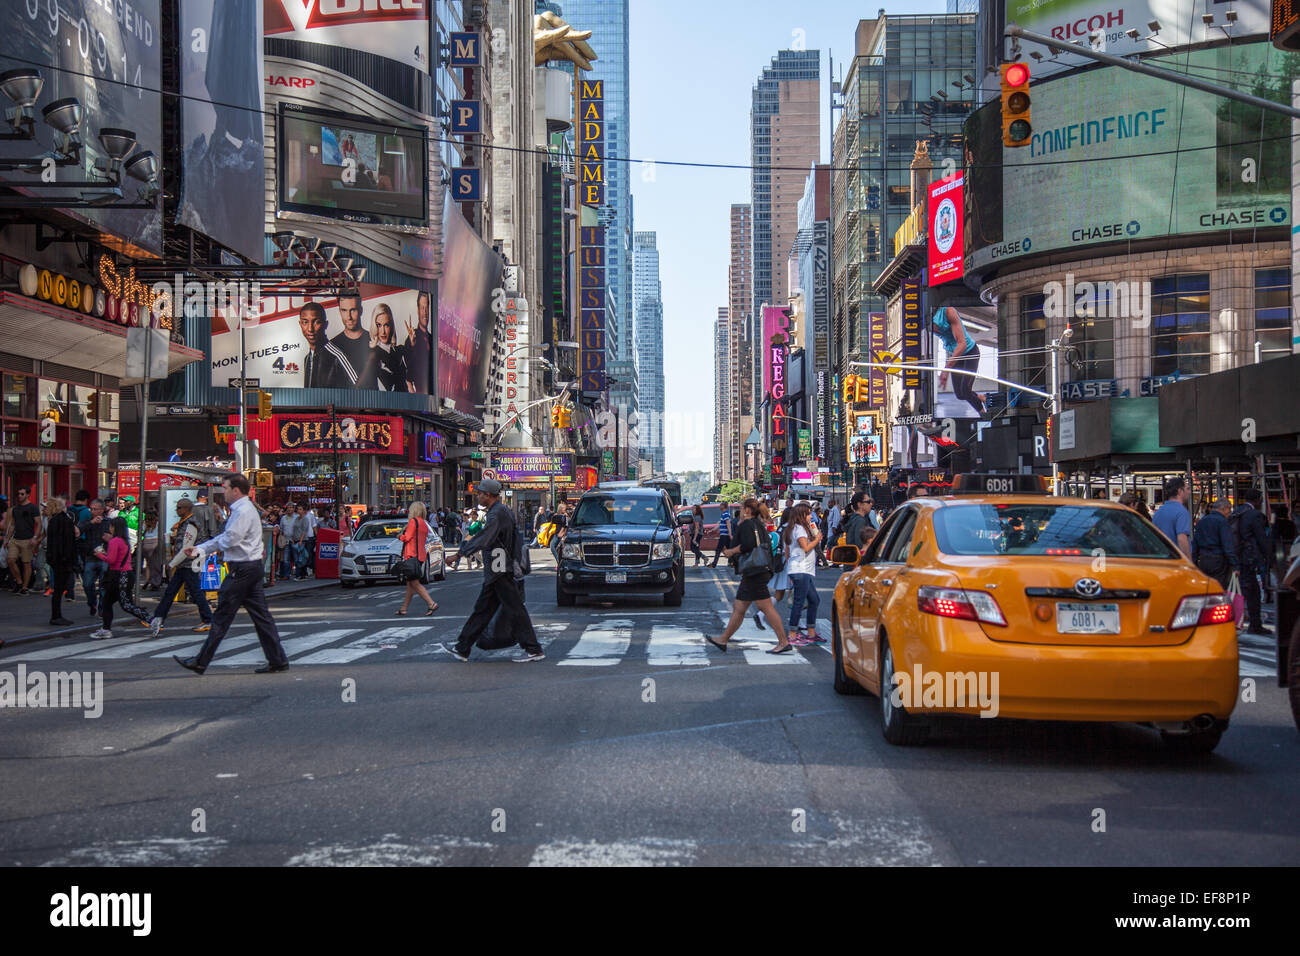 Famous 42nd street in Manhattan, New York City - Stock Image